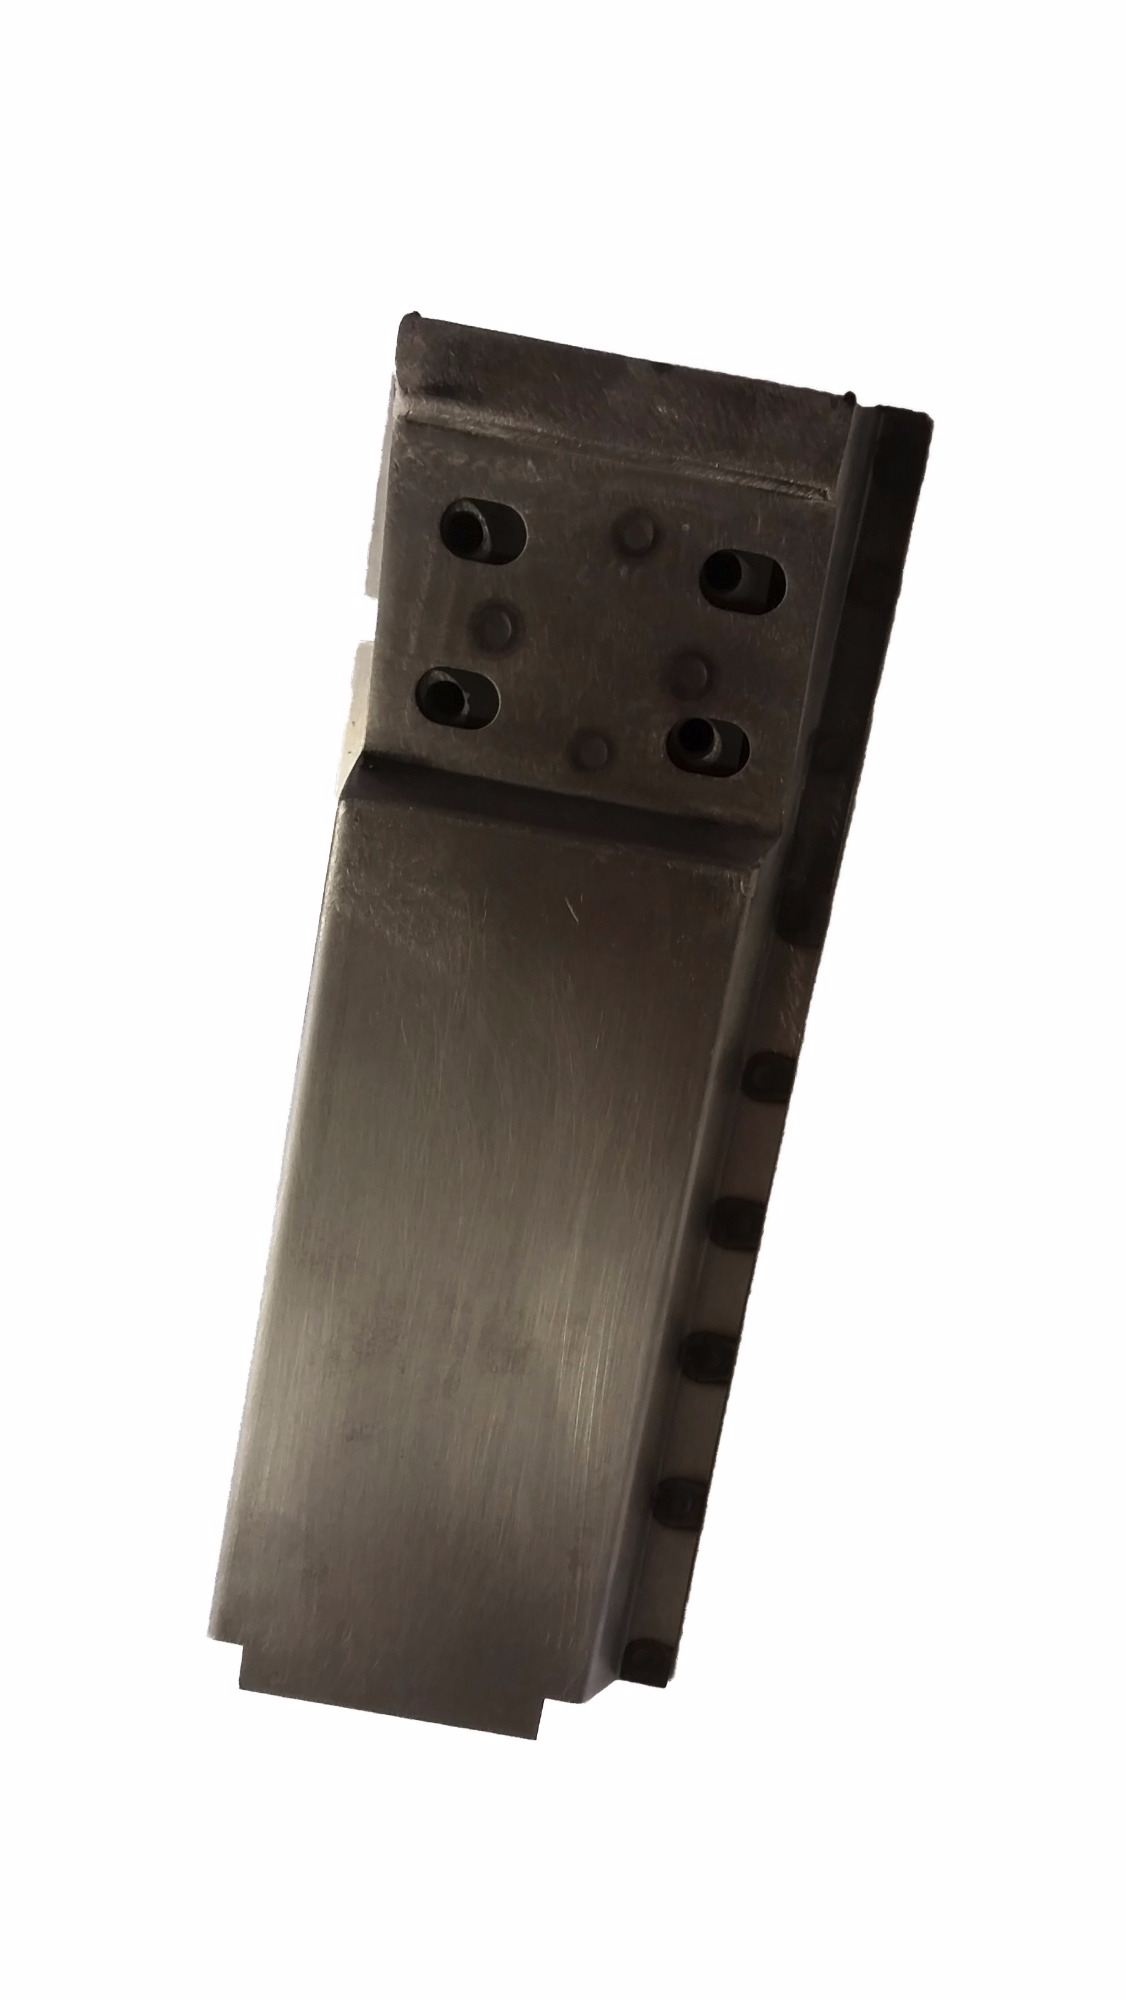 A-Post Lower Repair with Hinge Bracket, Right ->67  211-809-202B